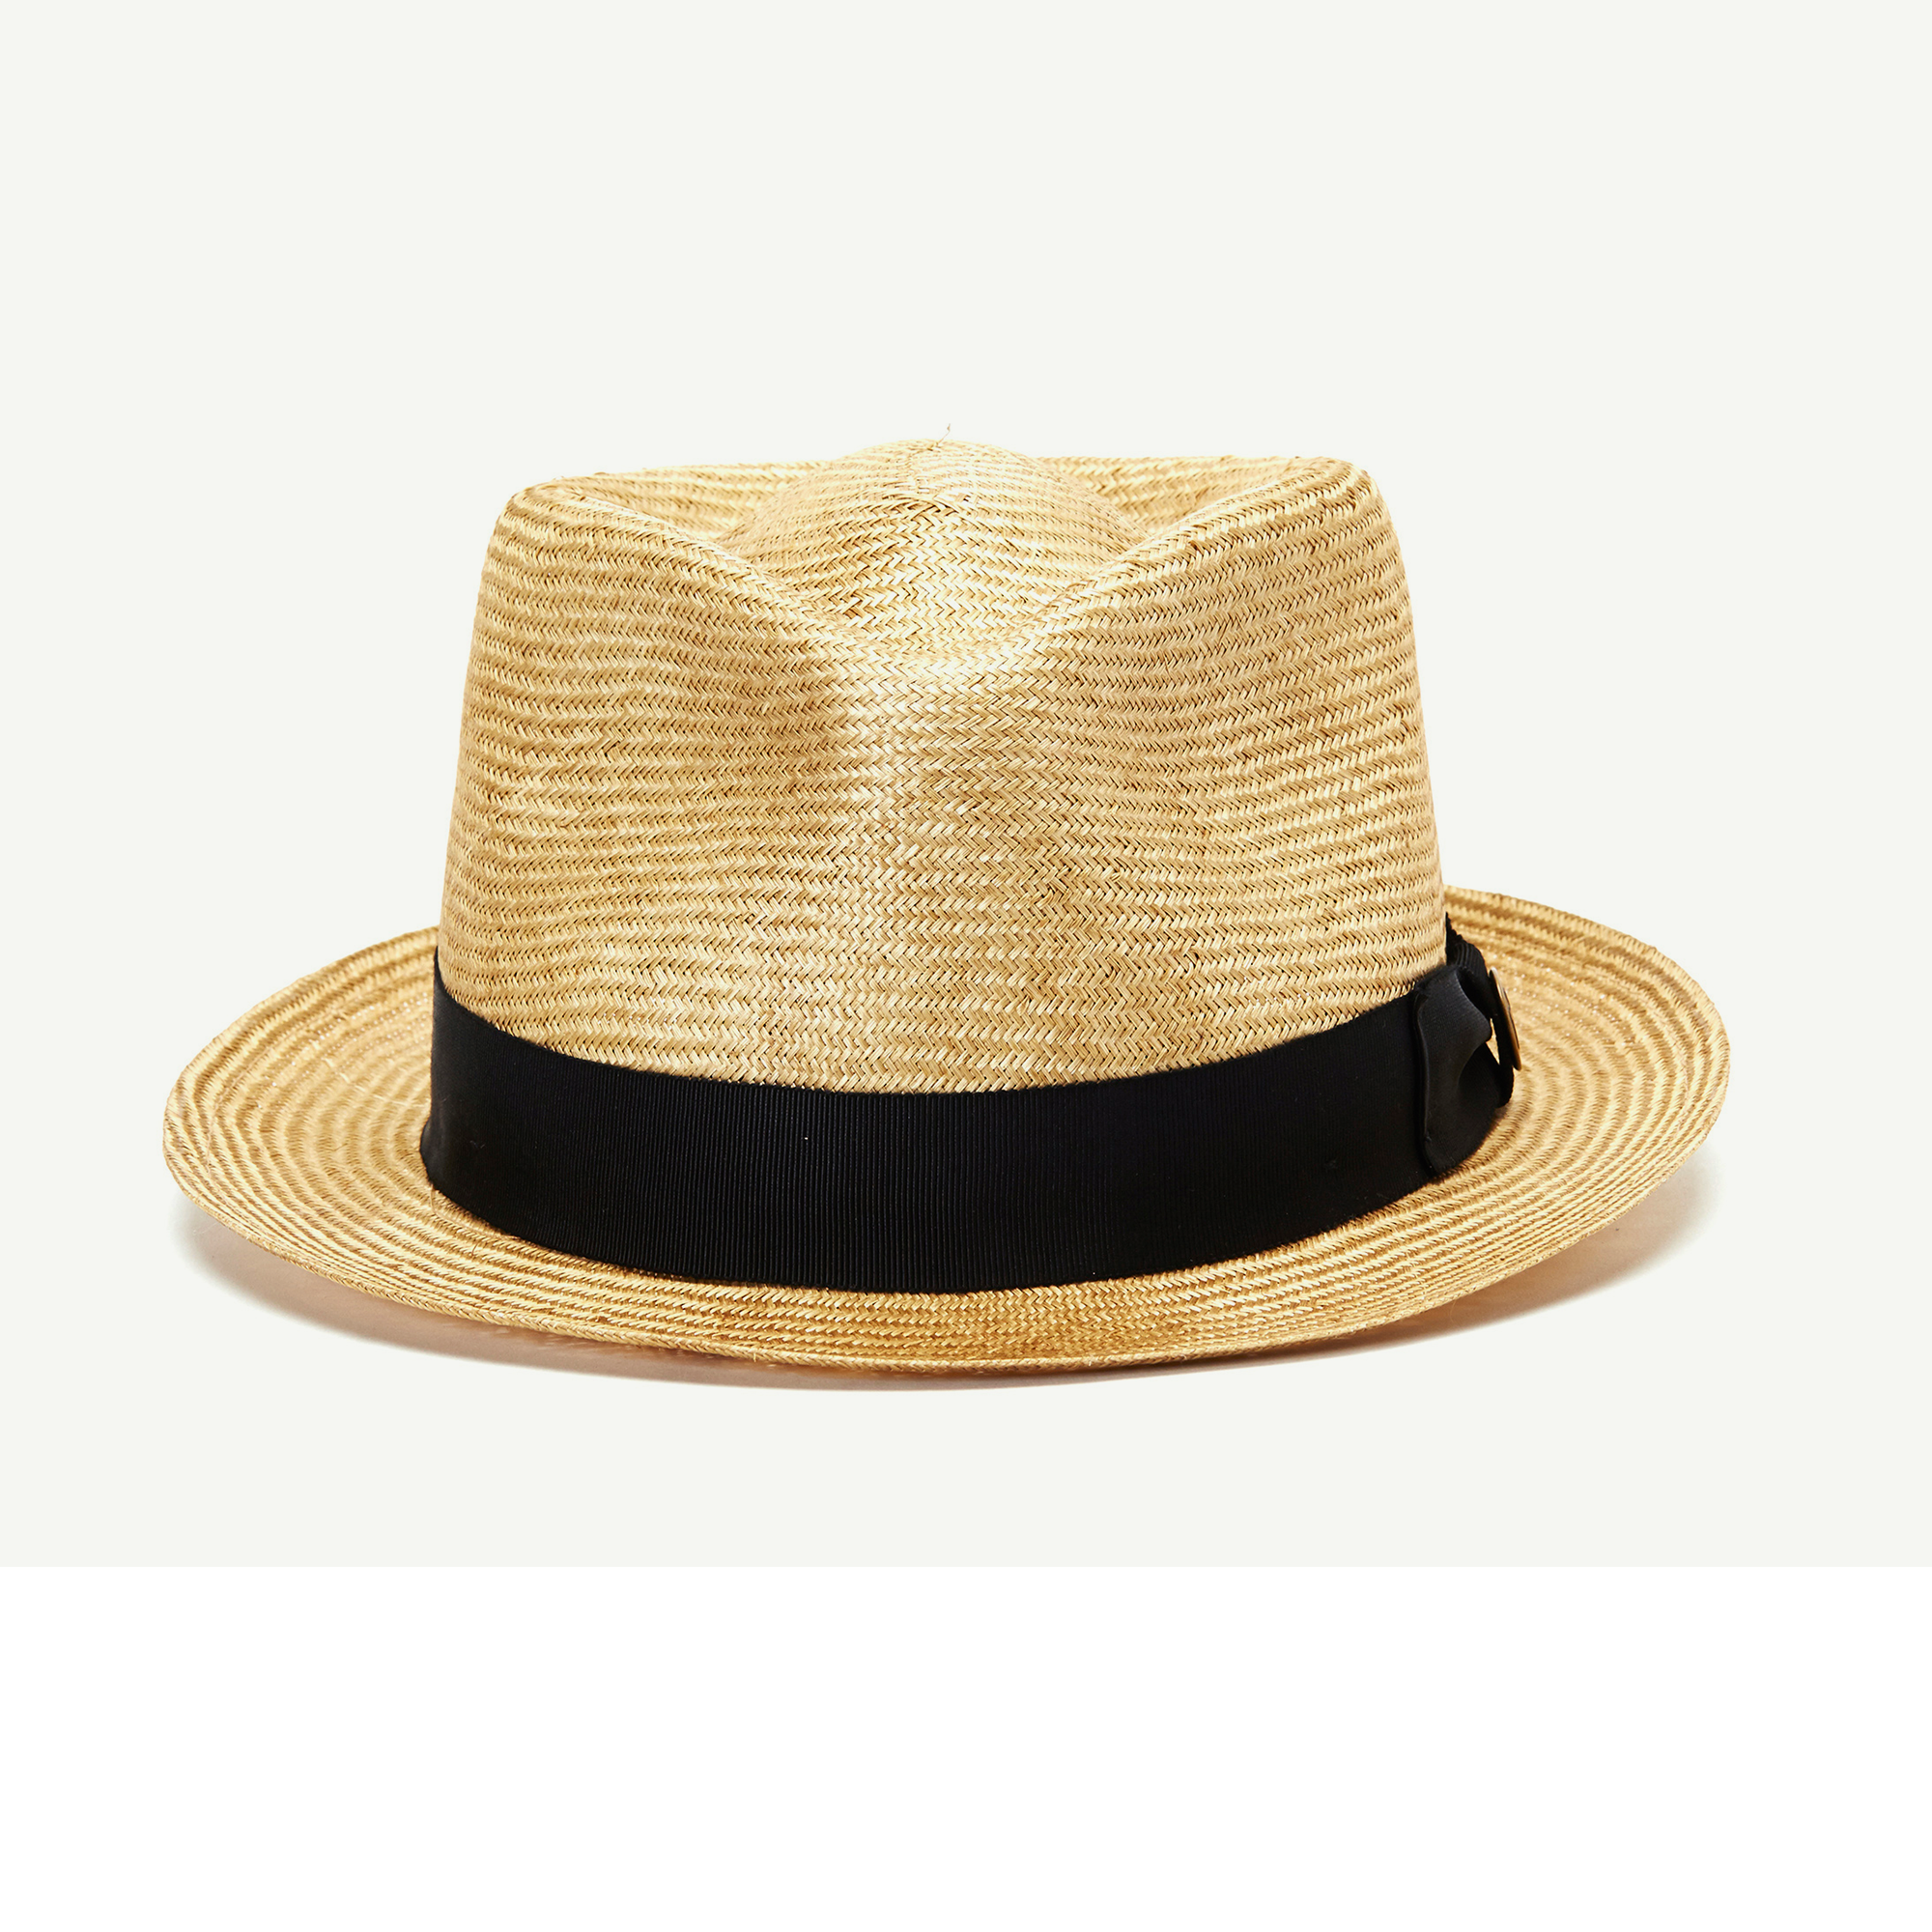 1200b6279a Tad Stanton Camel Straw Stingy Brim Fedora hat front view | Hat's in ...